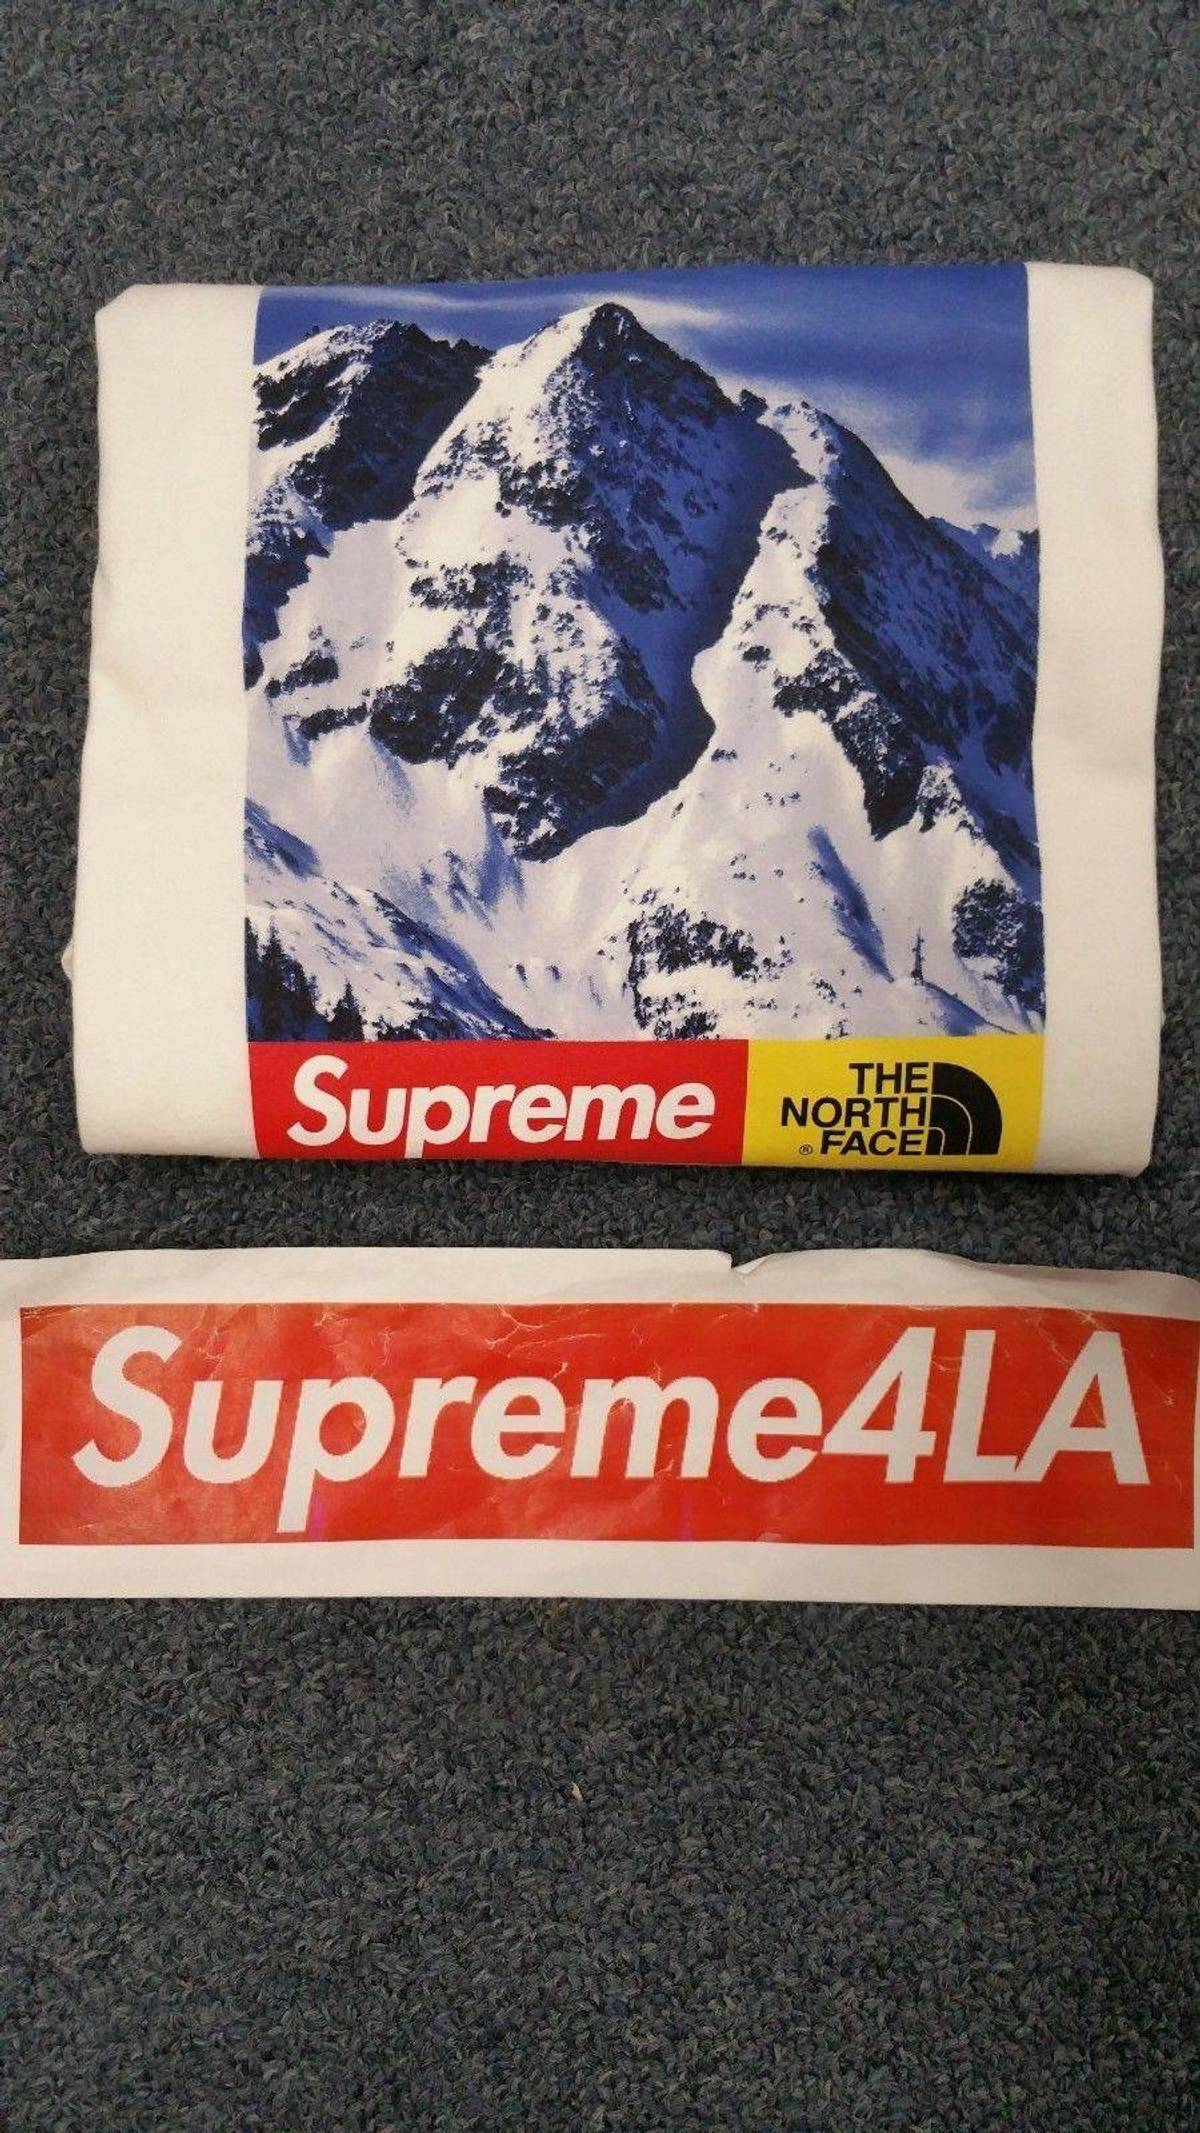 5a1714d2e Supreme × The North Face Supreme 17 F/W The North Face Mountain Tee White  Size M 1000% Authentic In Hand Size M $250